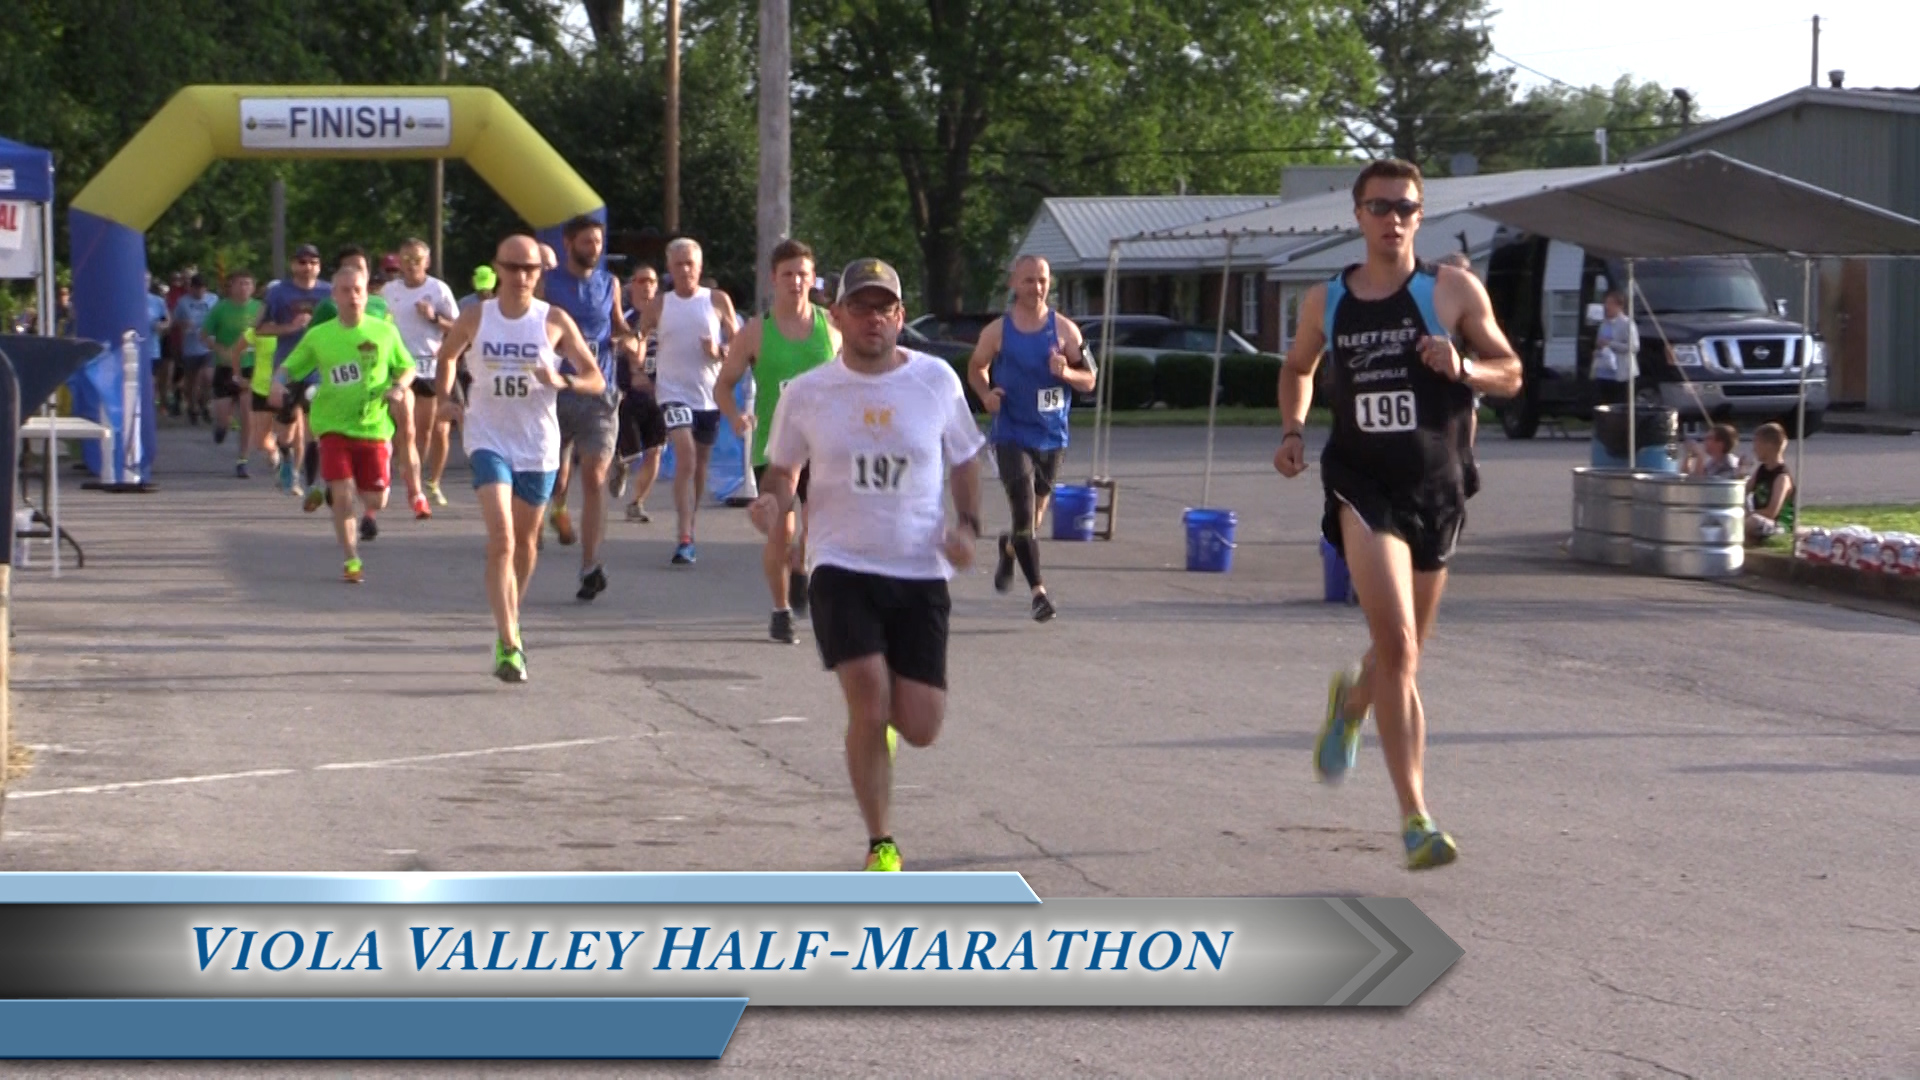 VIDEO - Viola Valley Half-Maraton